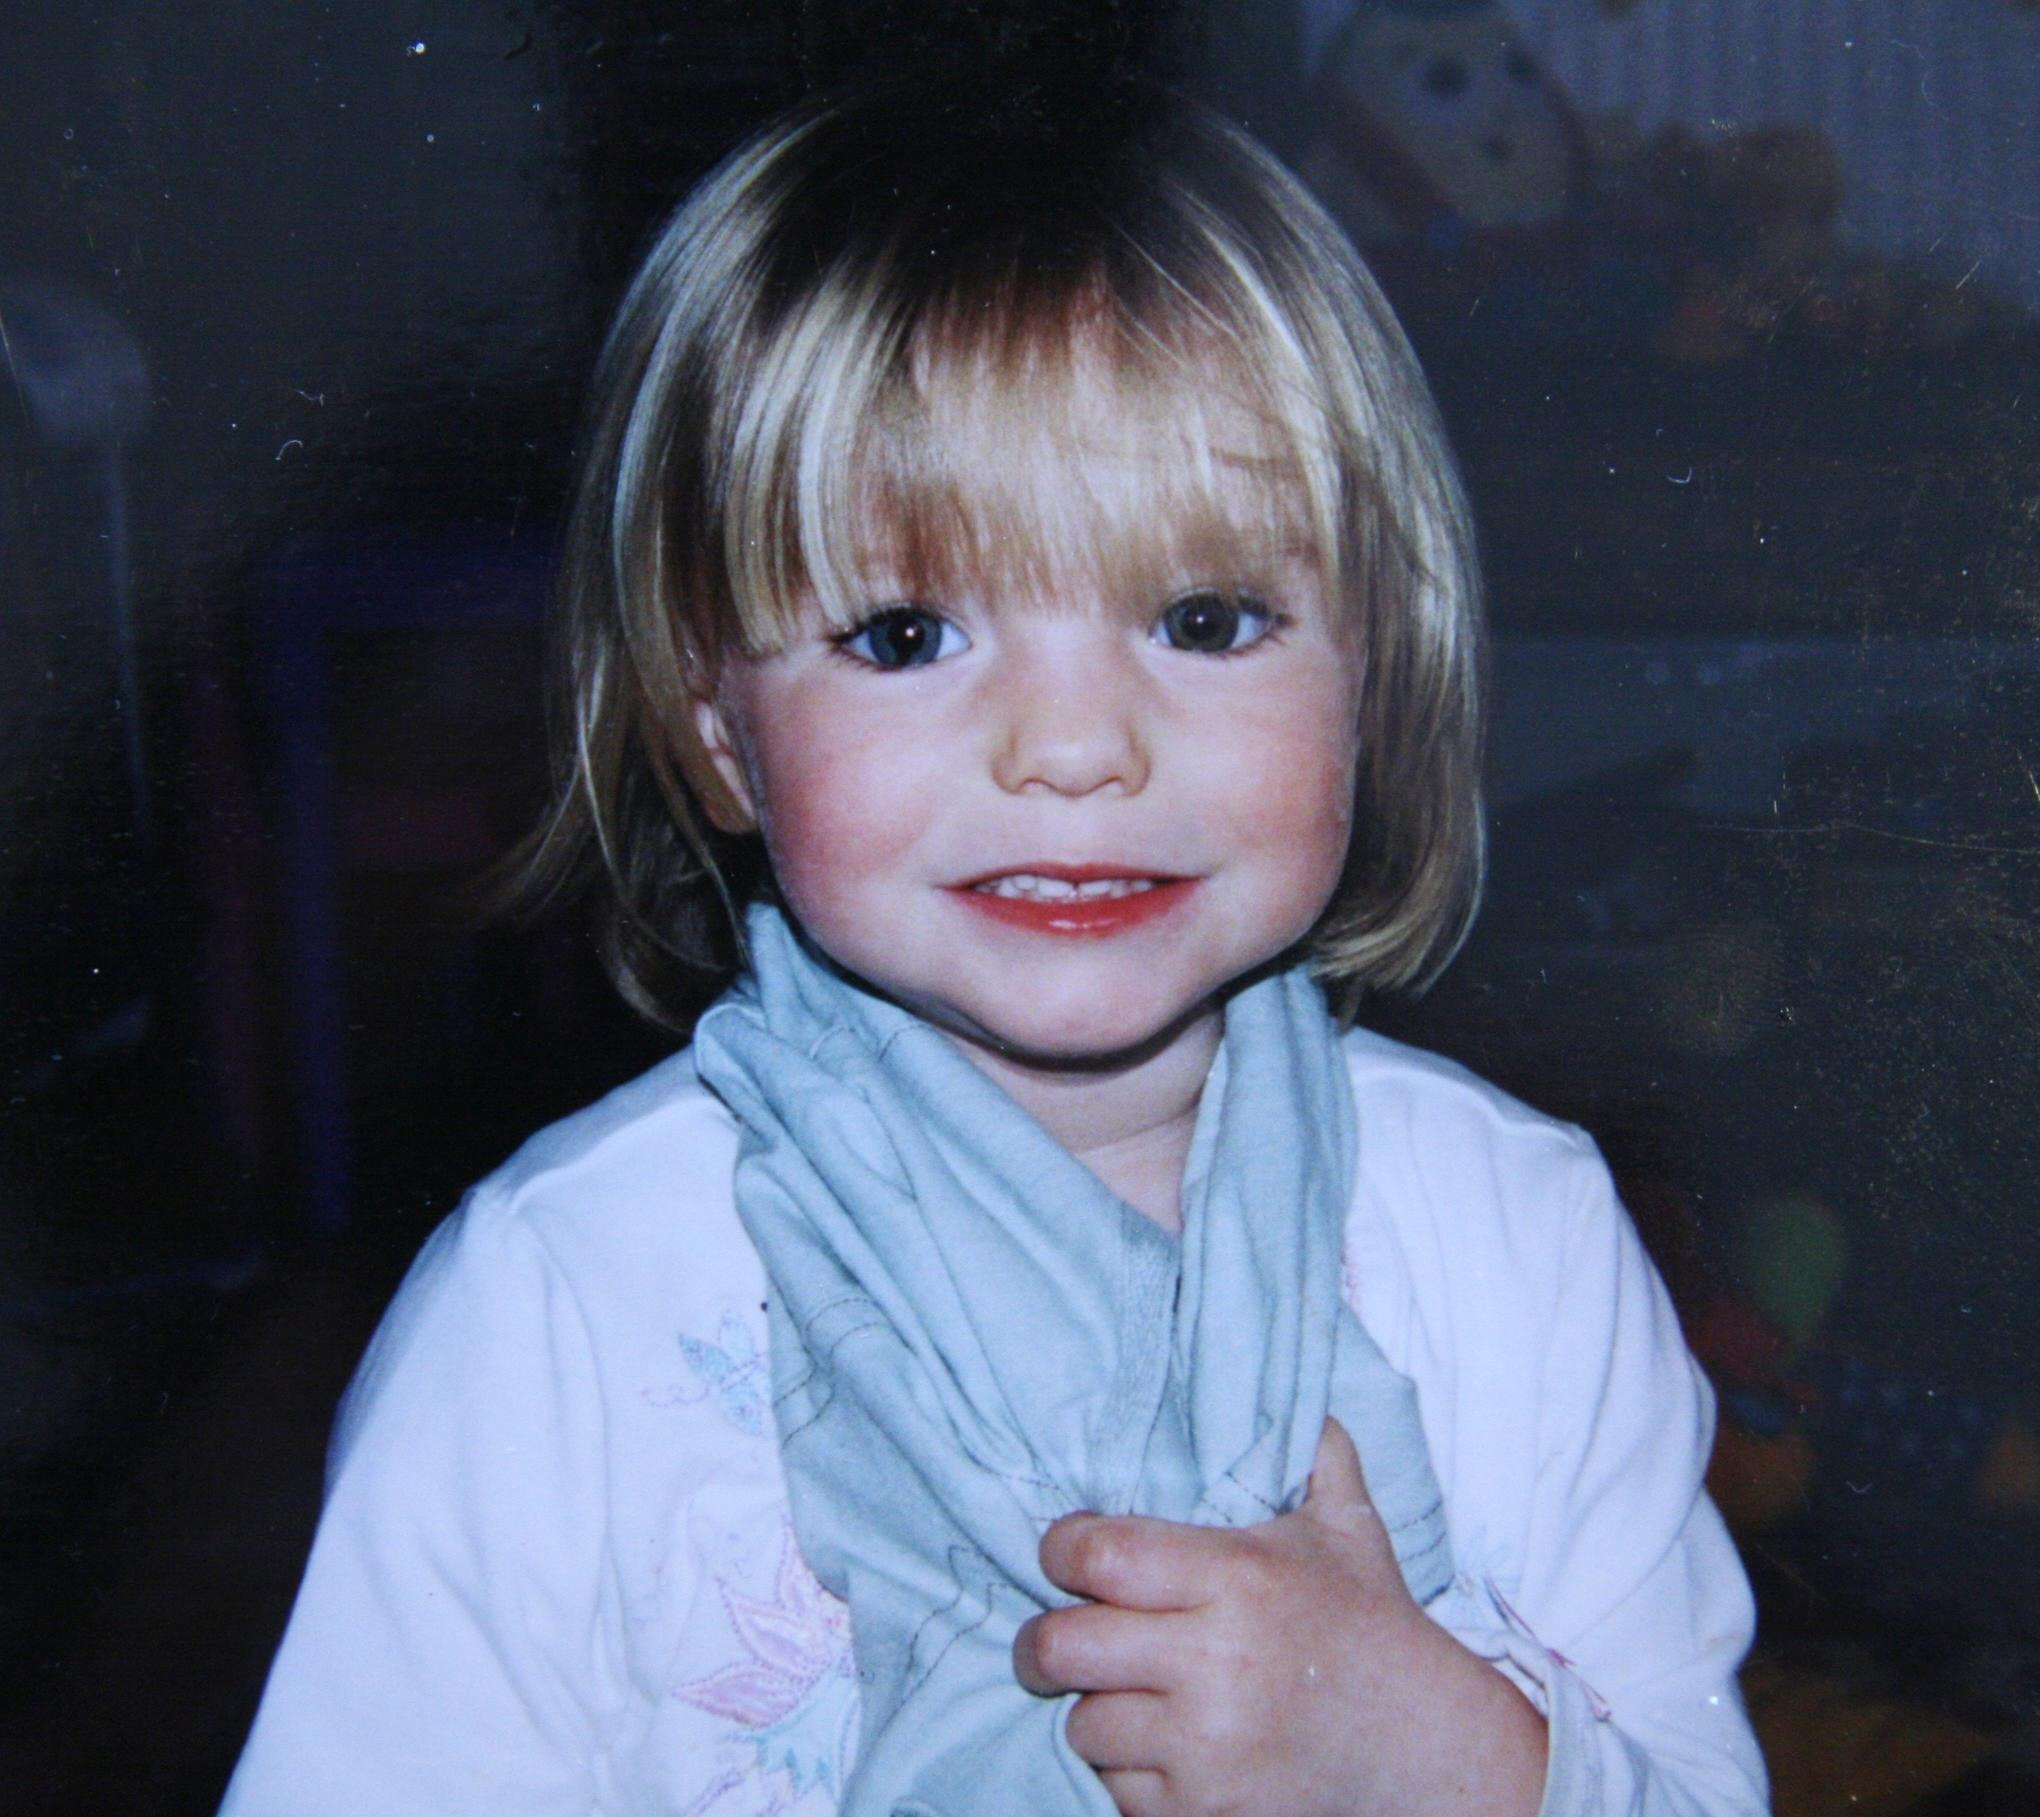 mccann2 Police Searching For Madeleine McCann End Forensic Investigation To Save Money